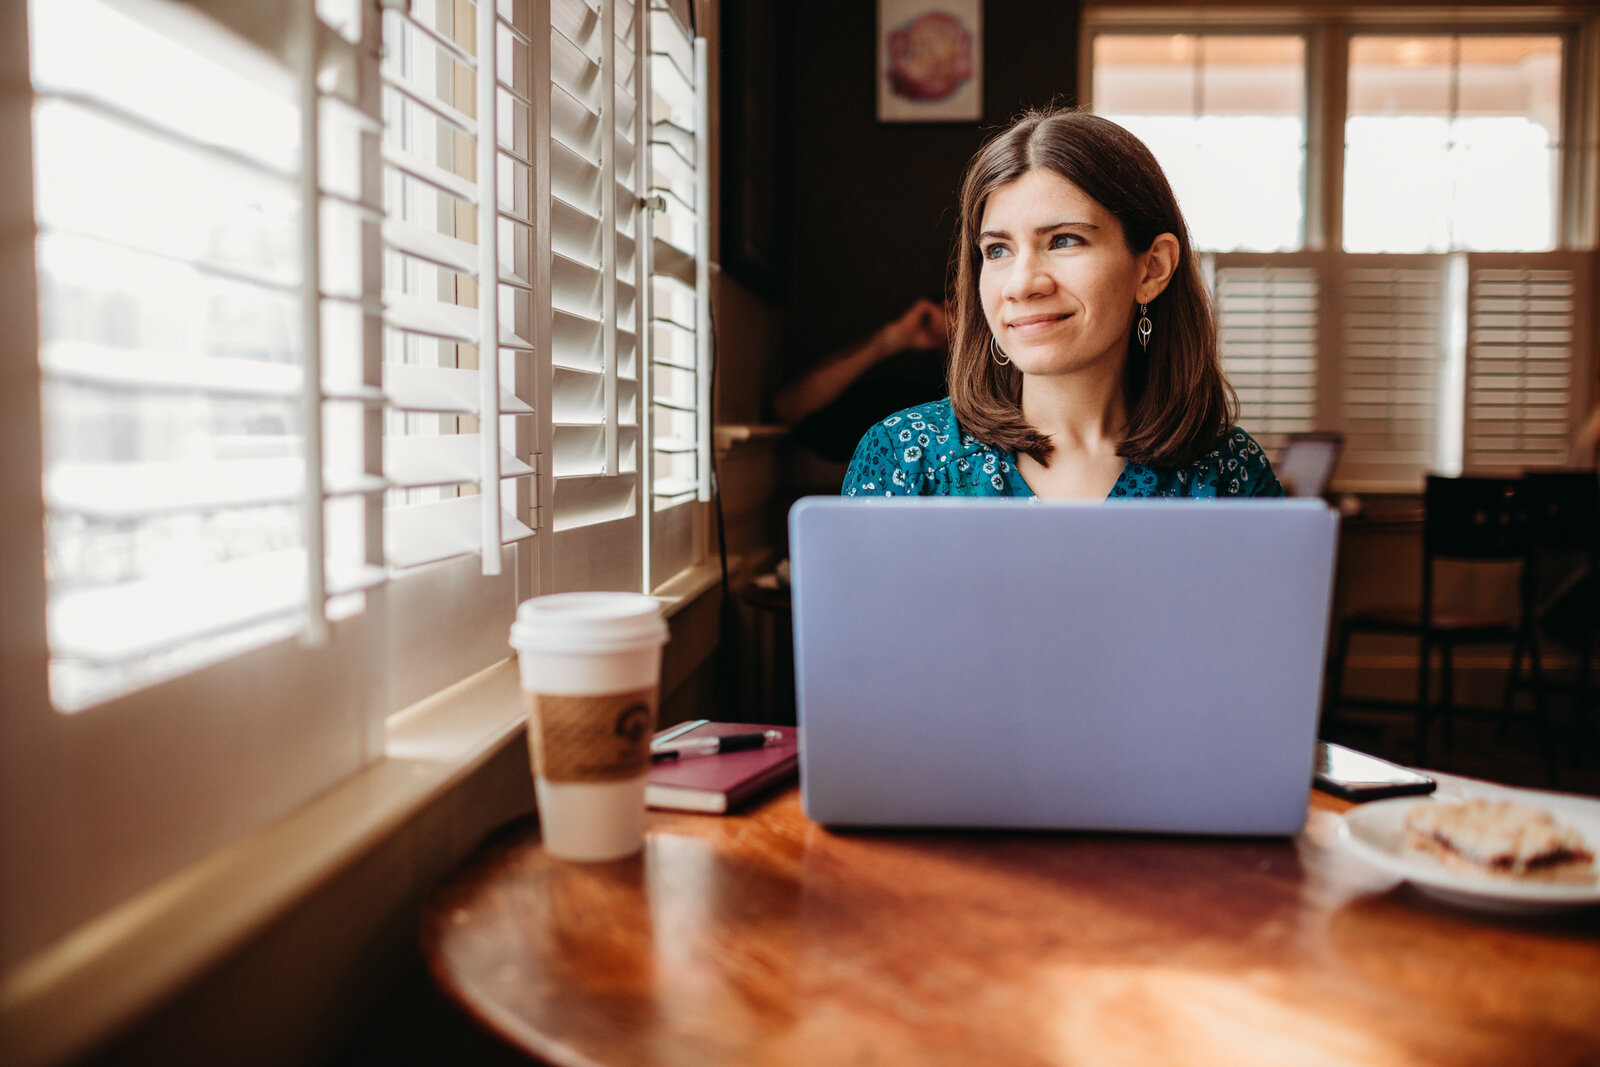 woman works at coffee shop during marketing photo session